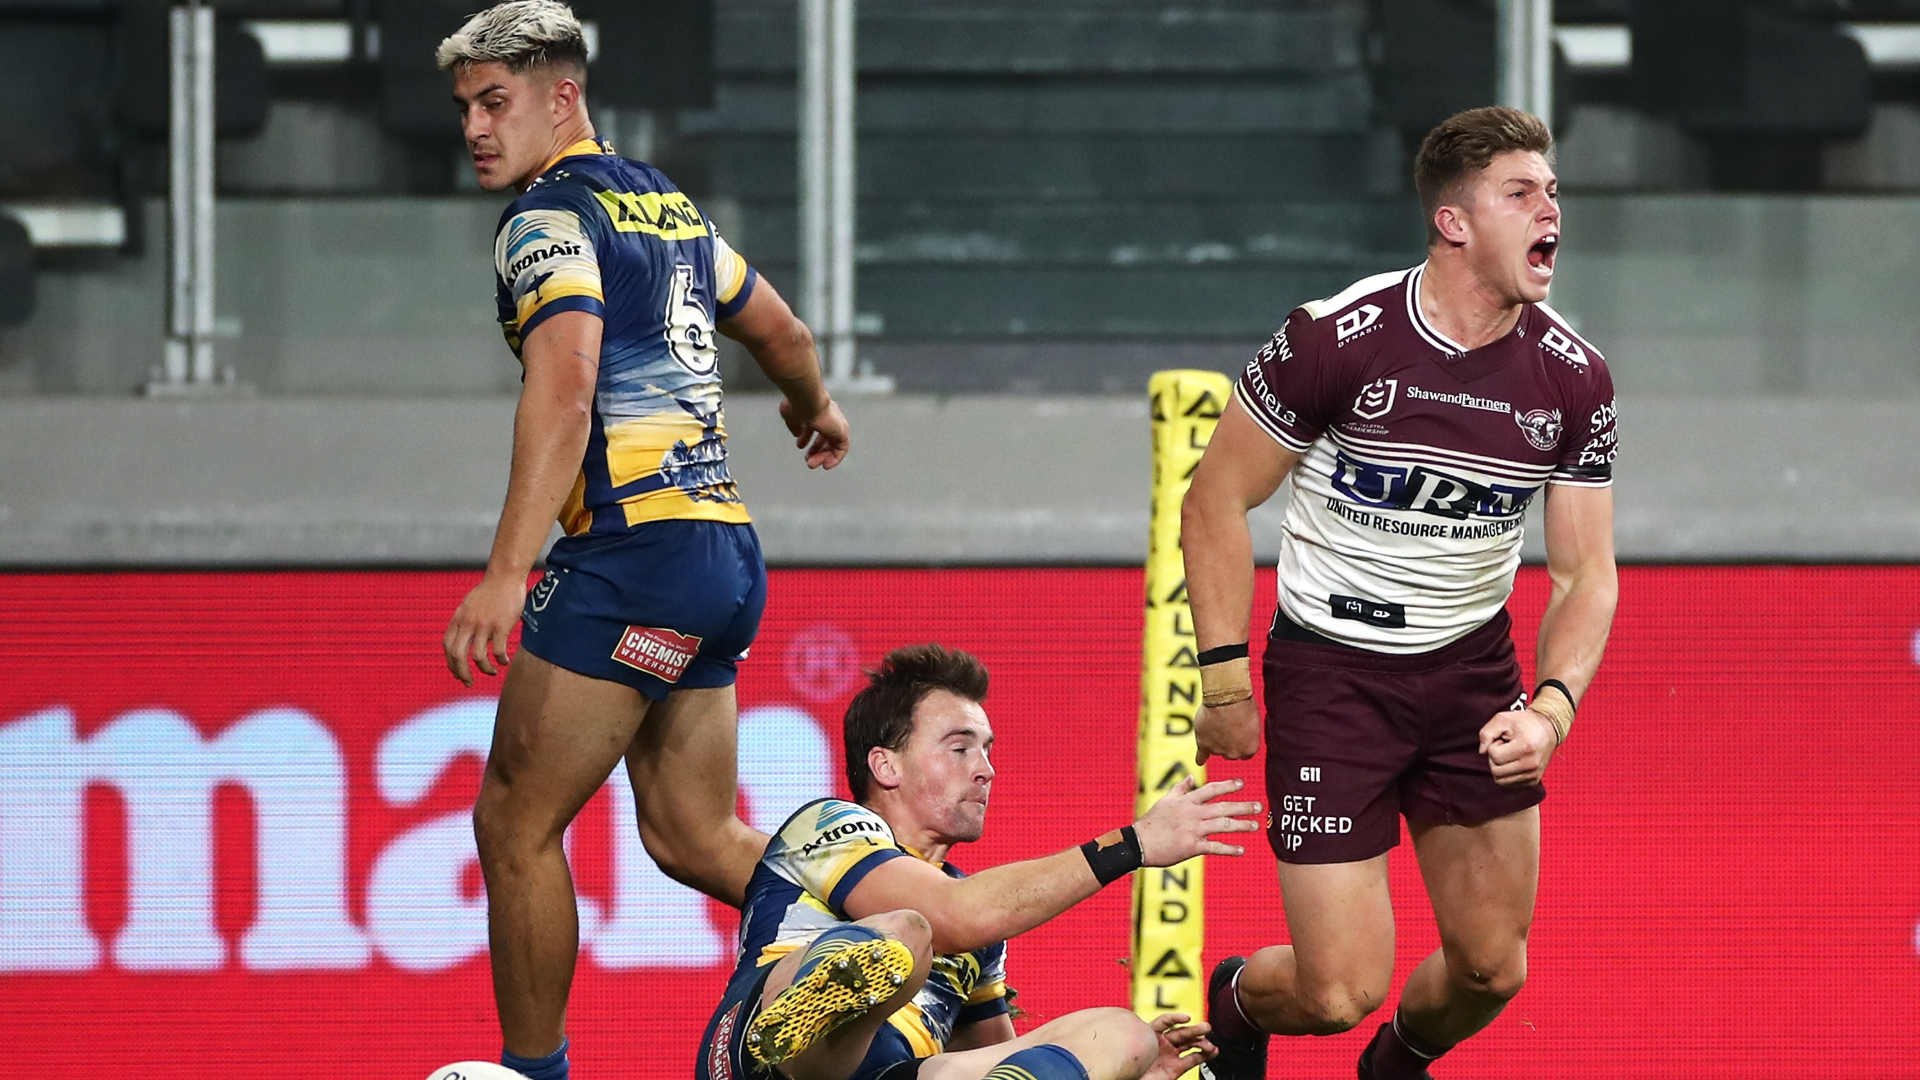 Sea Eagles denied by forward pass as Ramien leads Sharks to first win